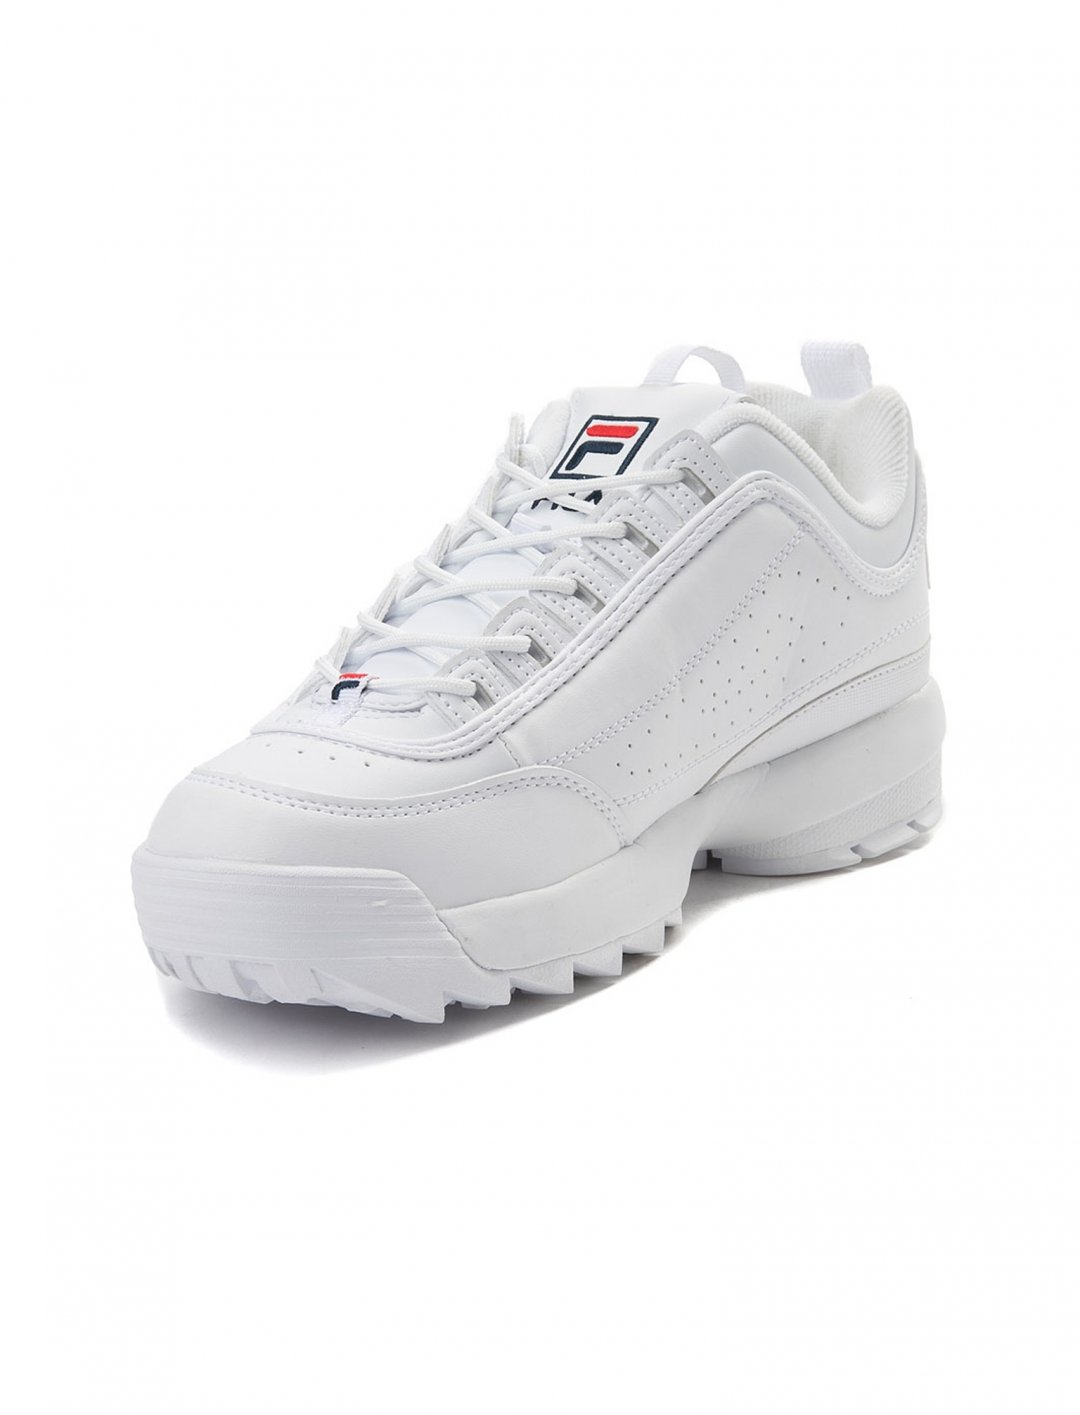 Ashley's Sneakers Shoes FILA